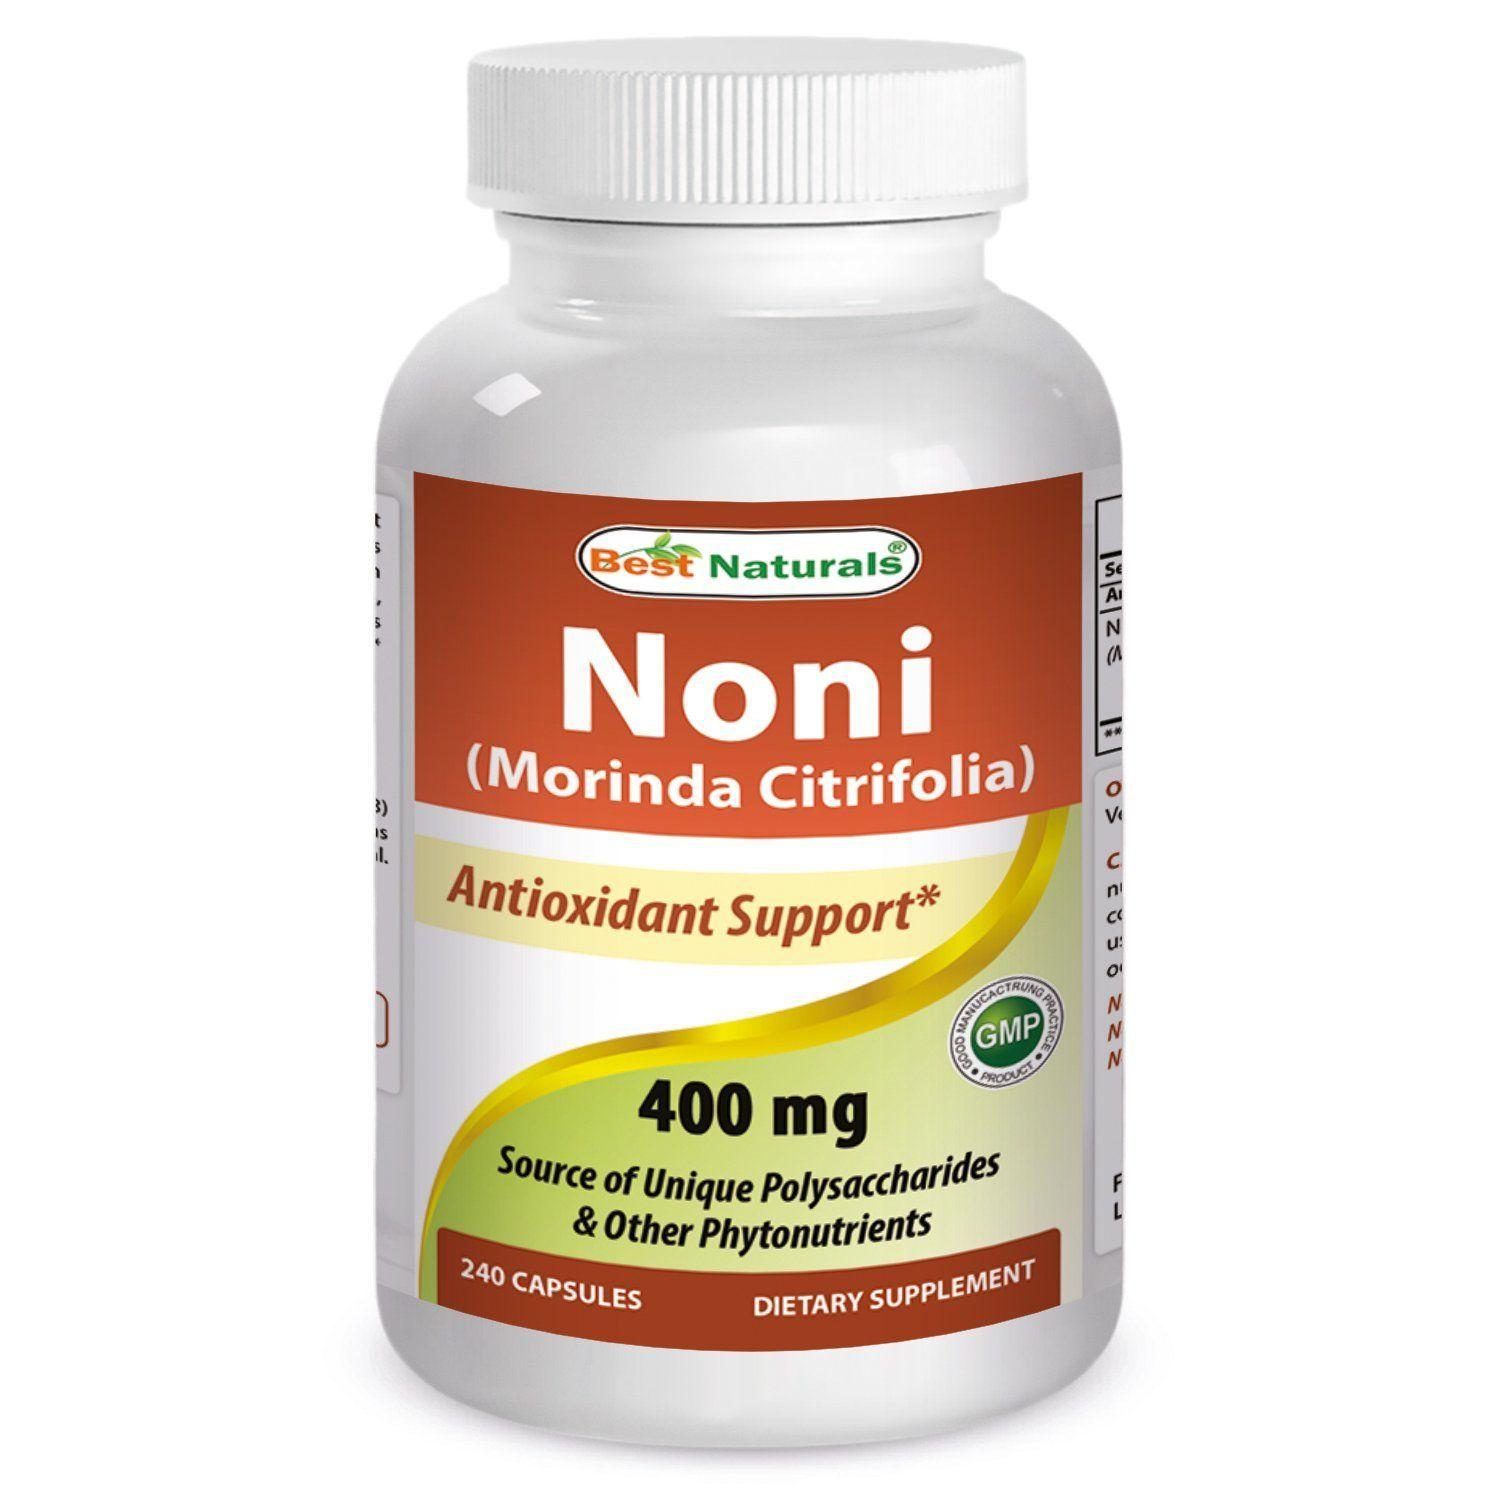 Best Naturals Noni 400 mg 240 Capsules Discover this